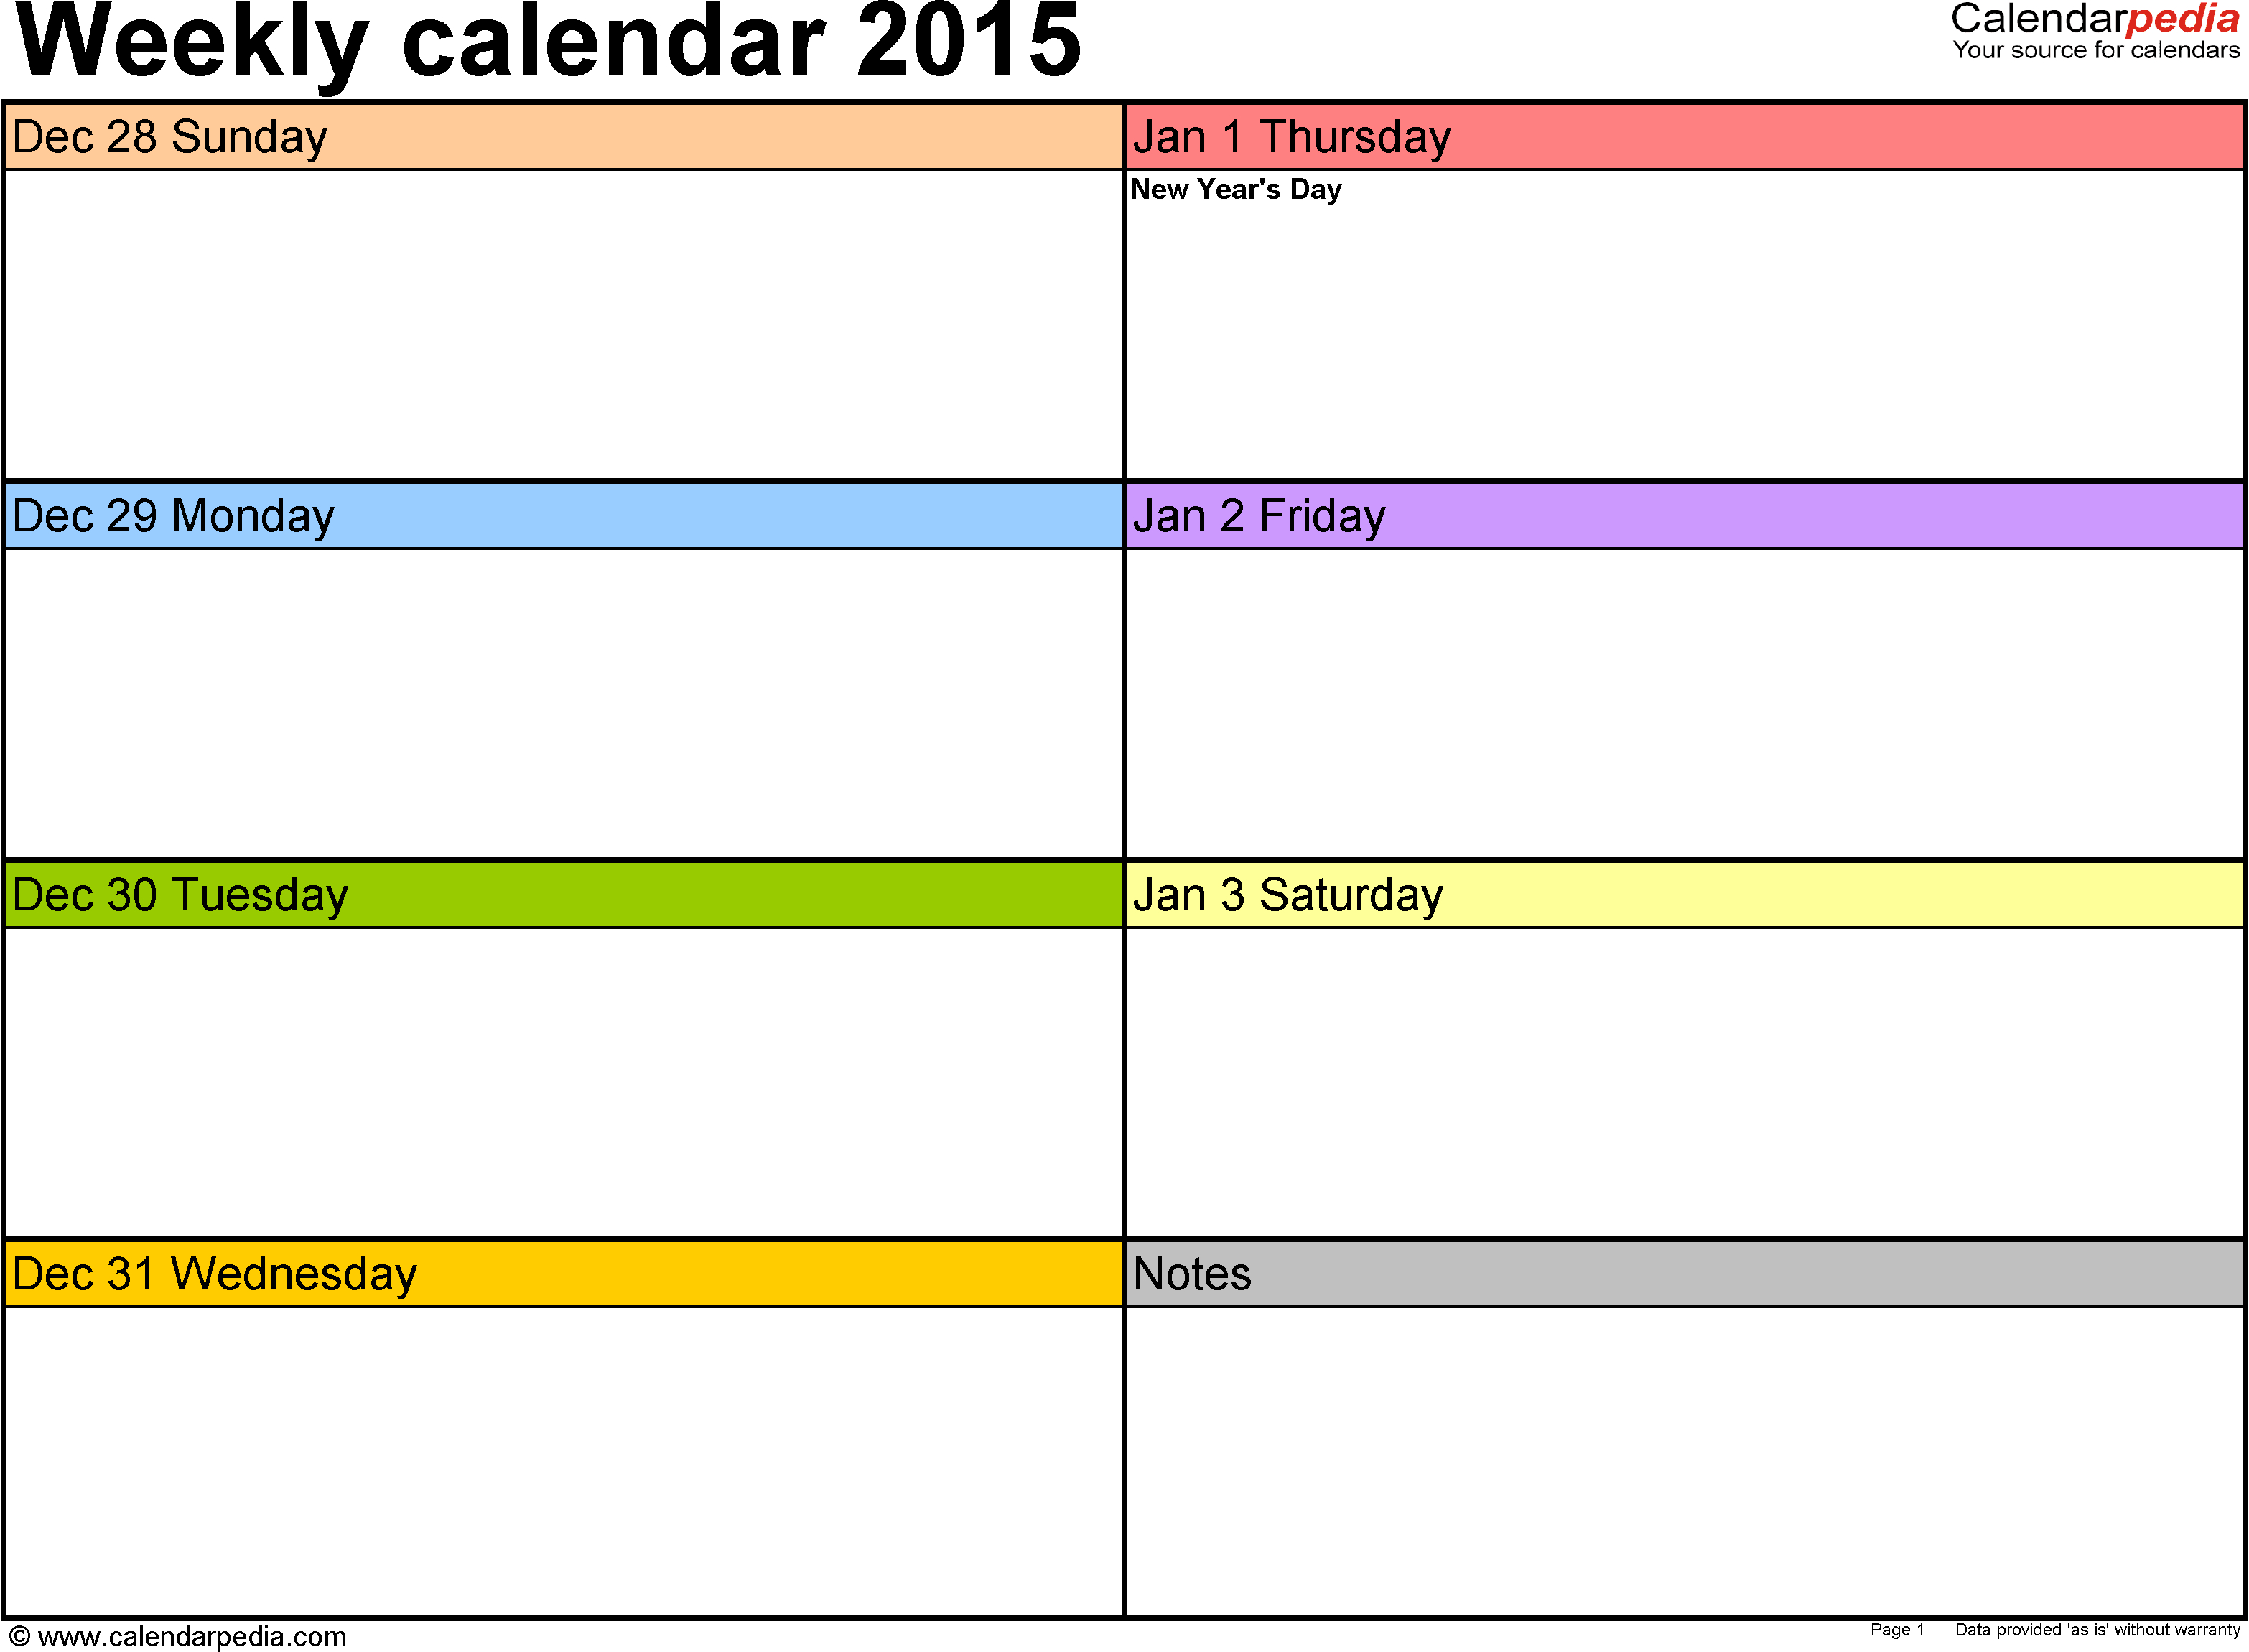 Weekly Calendar 2015 For Excel - 12 Free Printable Templates with 2 Week Work Schedule Templates